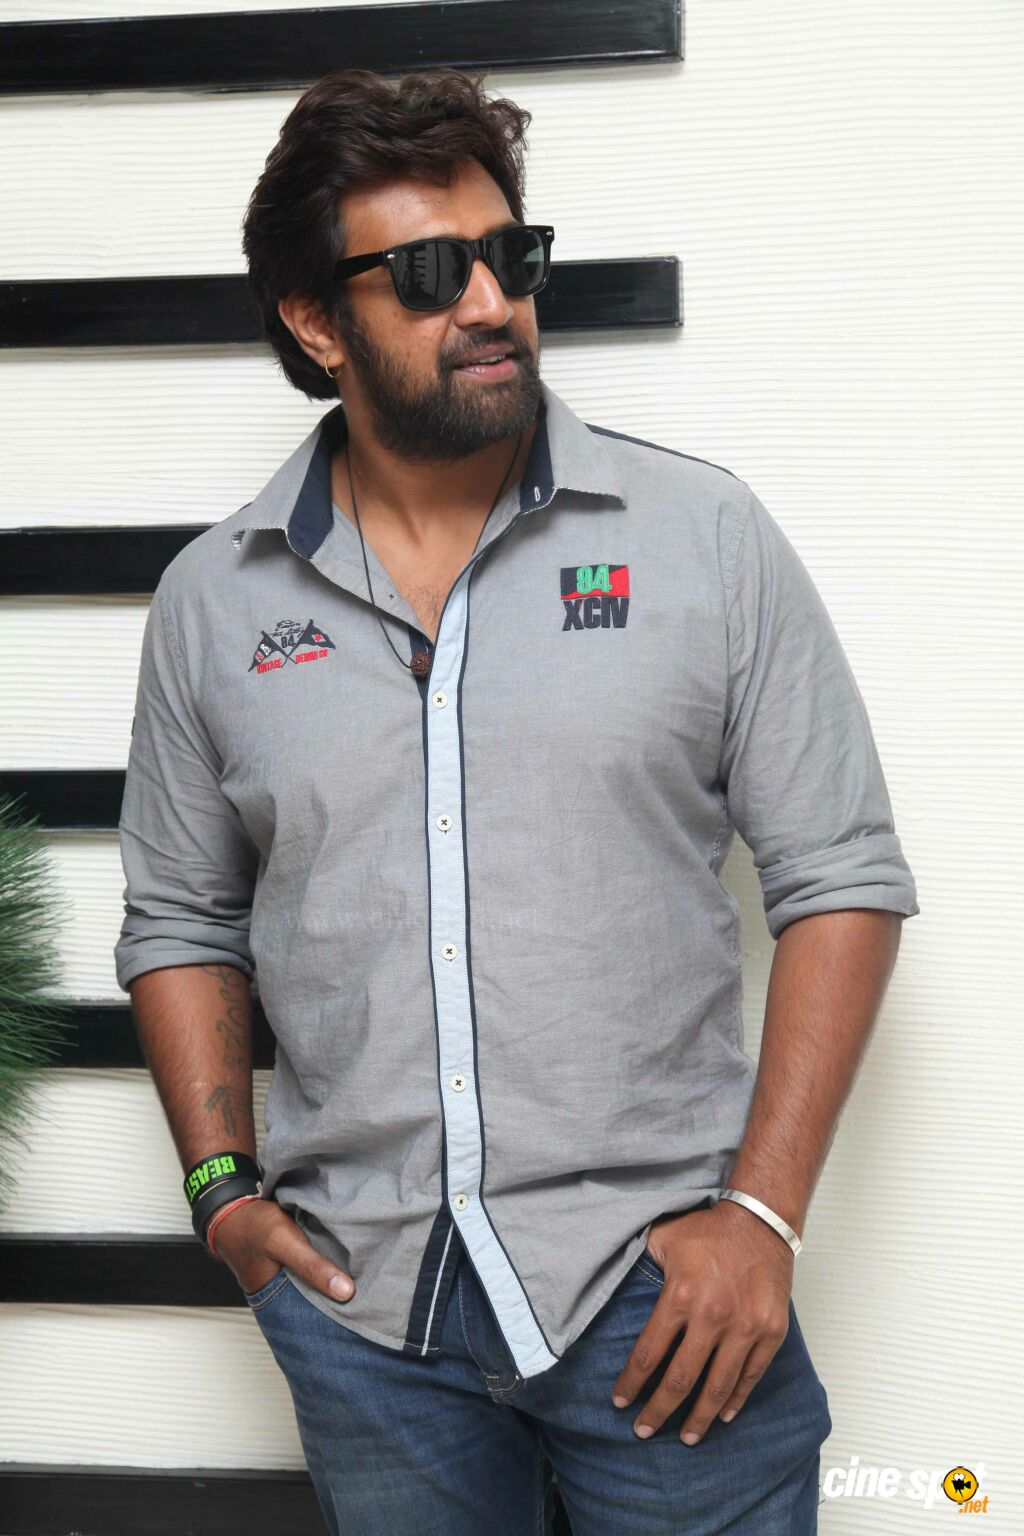 chiranjeevi sarja kannada movieschiranjeevi sarja movie list, chiranjeevi sarja height, chiranjeevi sarja photos, chiranjeevi sarja images, chiranjeevi sarja brother, chiranjeevi sarja kannada movies, chiranjeevi sarja family, chiranjeevi sarja date of birth, chiranjeevi sarja hit songs, chiranjeevi sarja and amulya, chiranjeevi sarja twitter, chiranjeevi sarja new movie, chiranjeevi sarja movie, chiranjeevi sarja caste, chiranjeevi sarja height and weight, chiranjeevi sarja films, chiranjeevi sarja family photo, chiranjeevi sarja ajith, chiranjeevi sarja all movies, chiranjeevi sarja new kannada movie